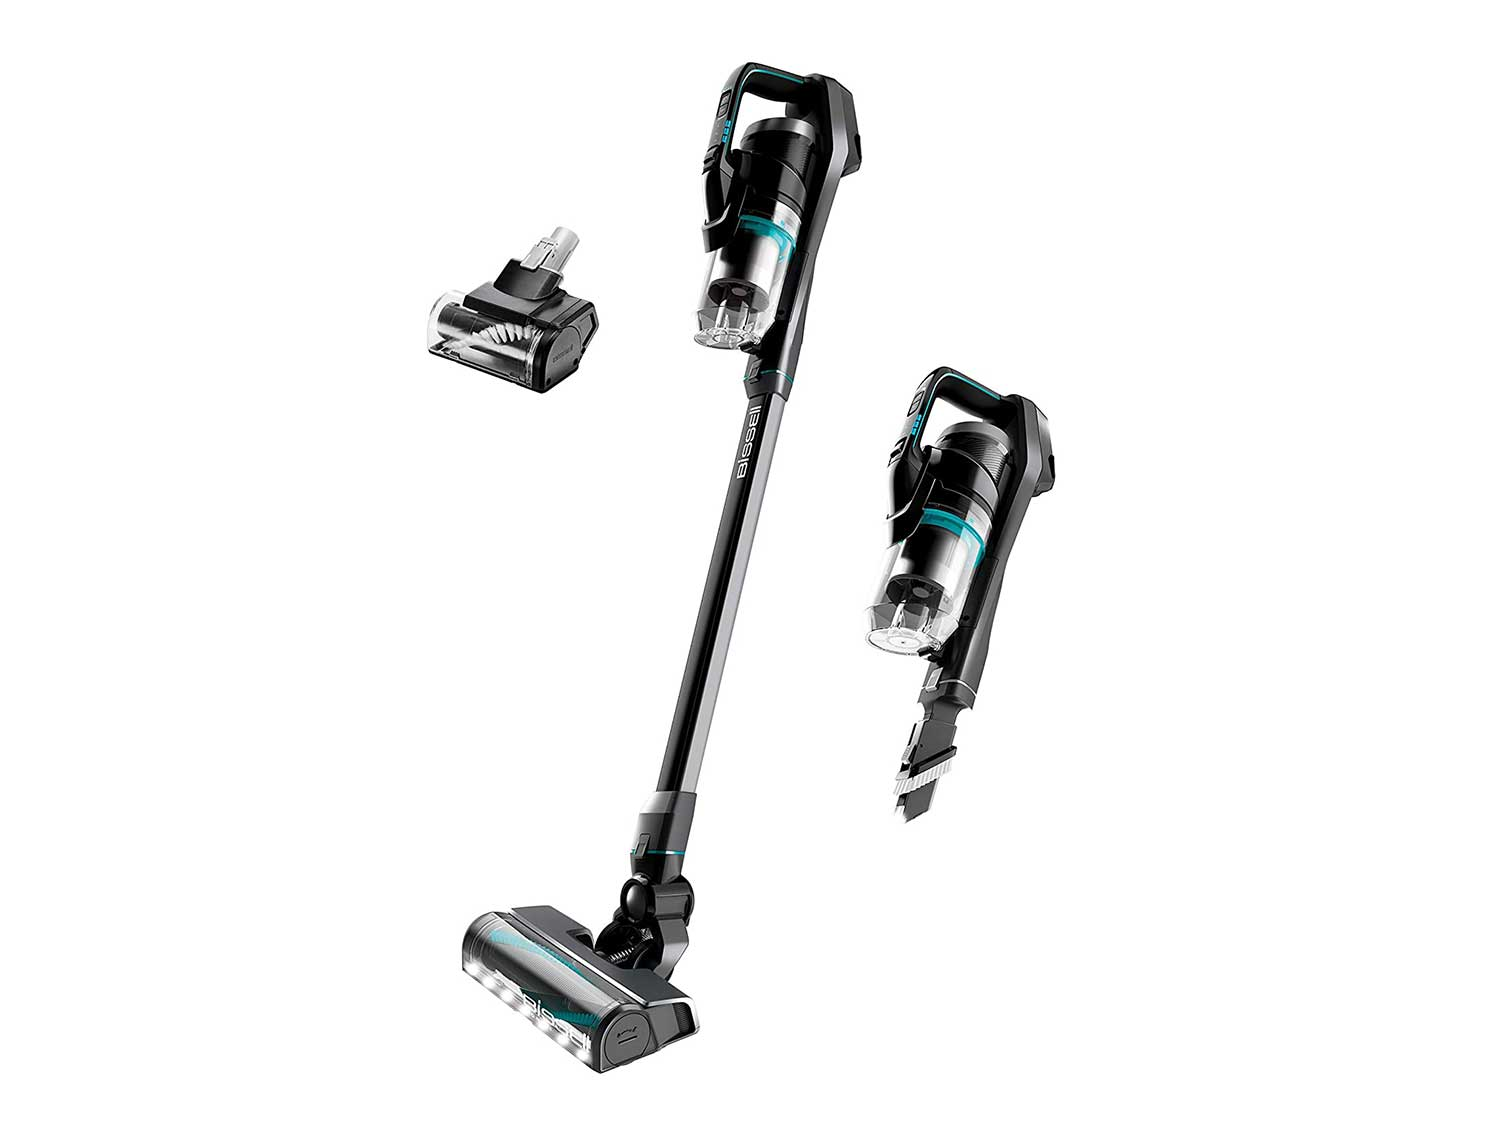 BISSELL ICONpet Cordless with Tangle Free Brushroll, SmartSeal Filtration, Lightweight Stick Hand Vacuum Cleaner